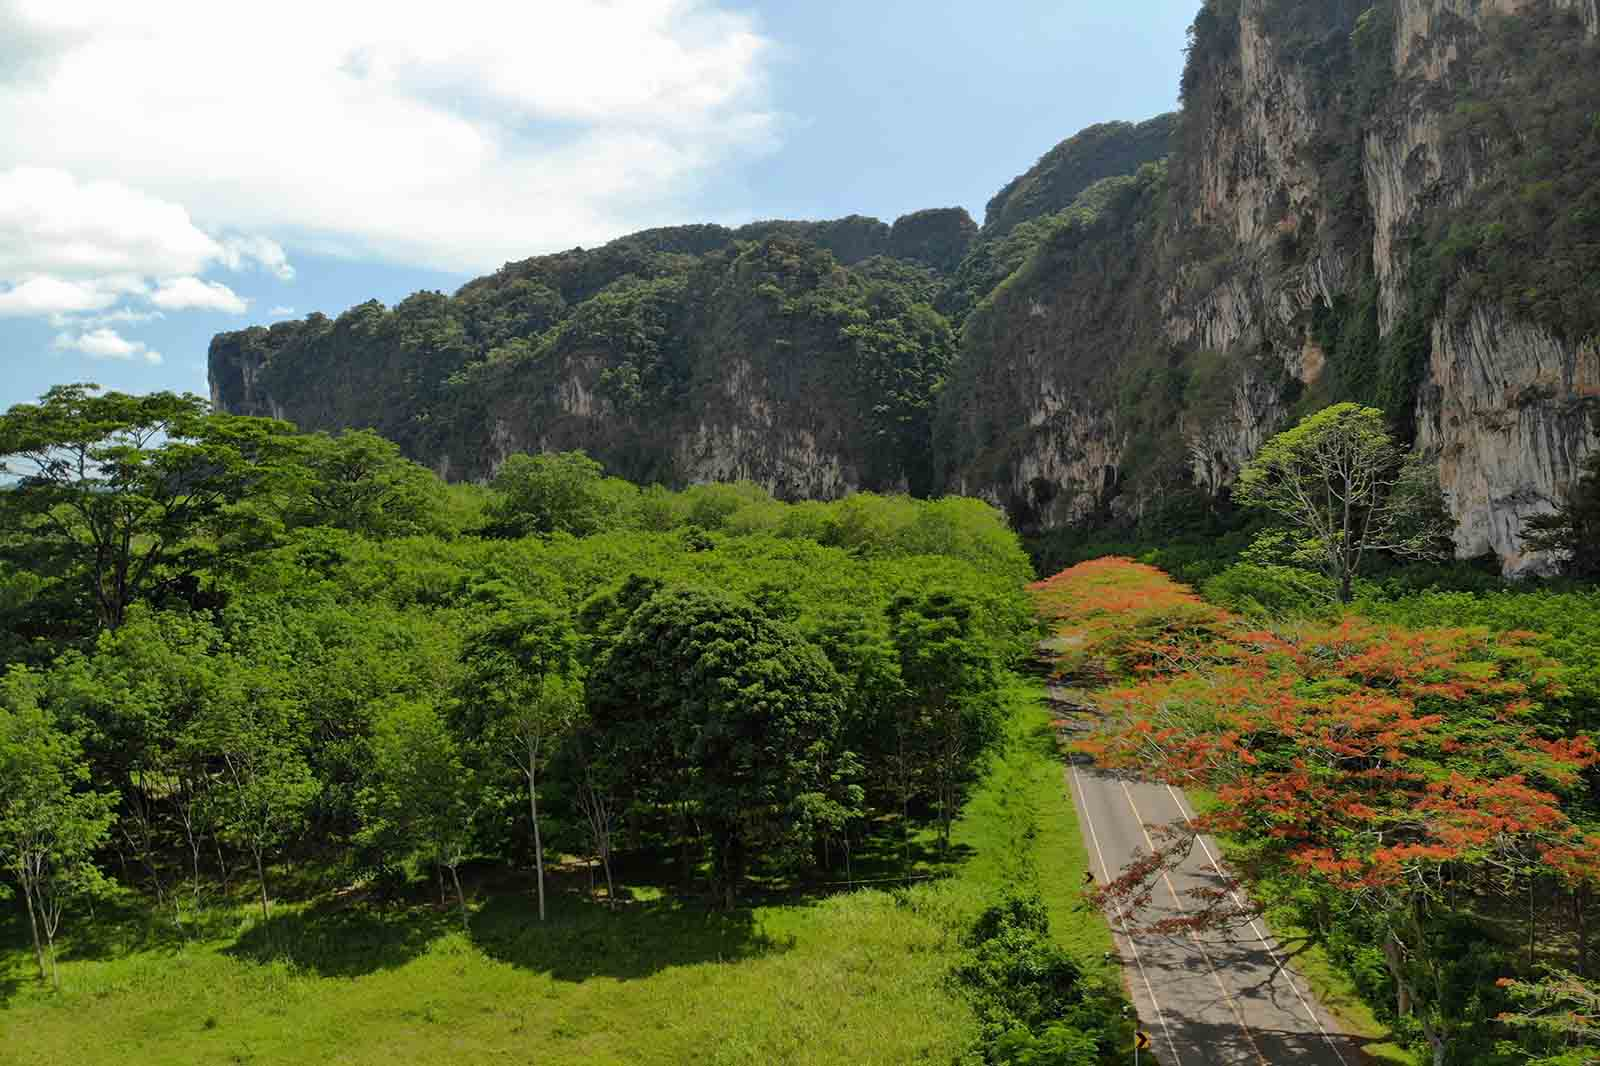 for sale - Beautiful 32 Rai Land for Sale with Amazing Scenery  - Khao Thong, Krabi